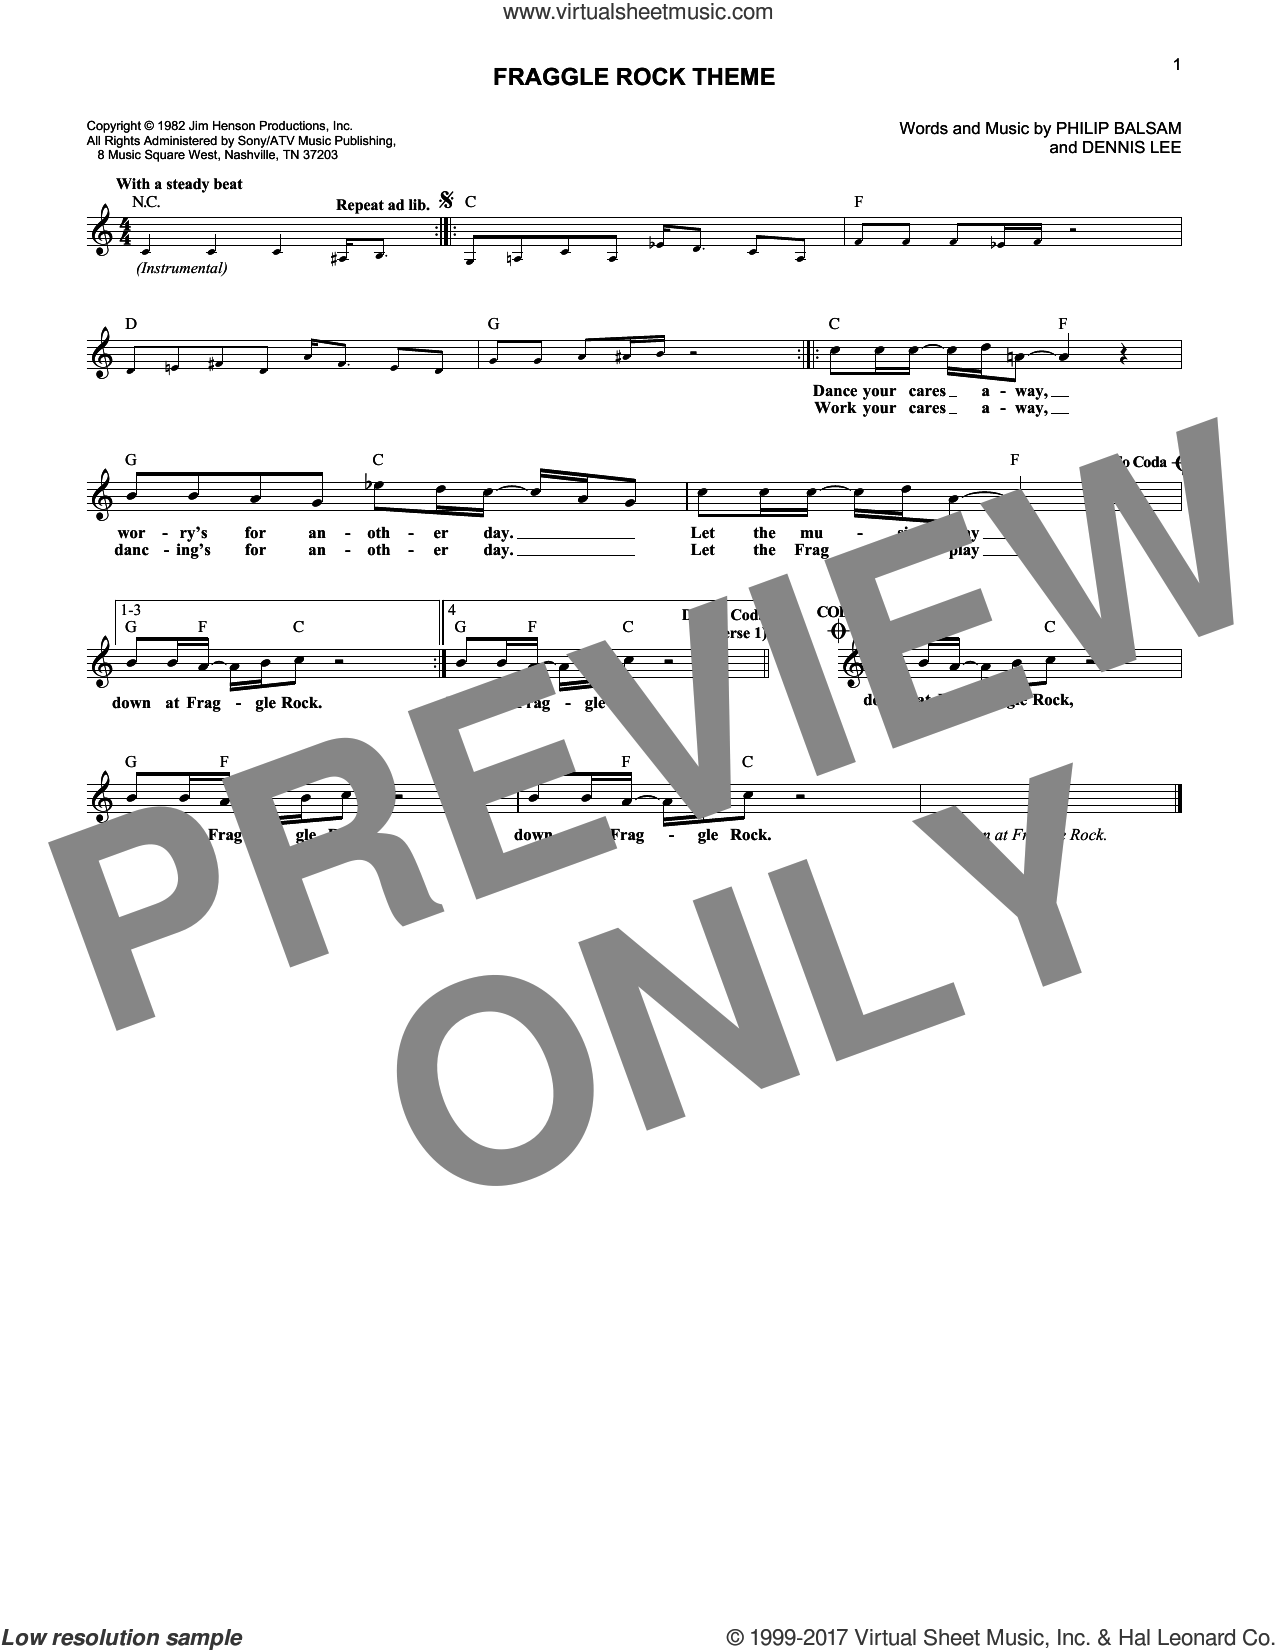 Fraggle Rock Theme sheet music for voice and other instruments (fake book) by Dennis Beynon Lee and Philip Balsam, intermediate. Score Image Preview.